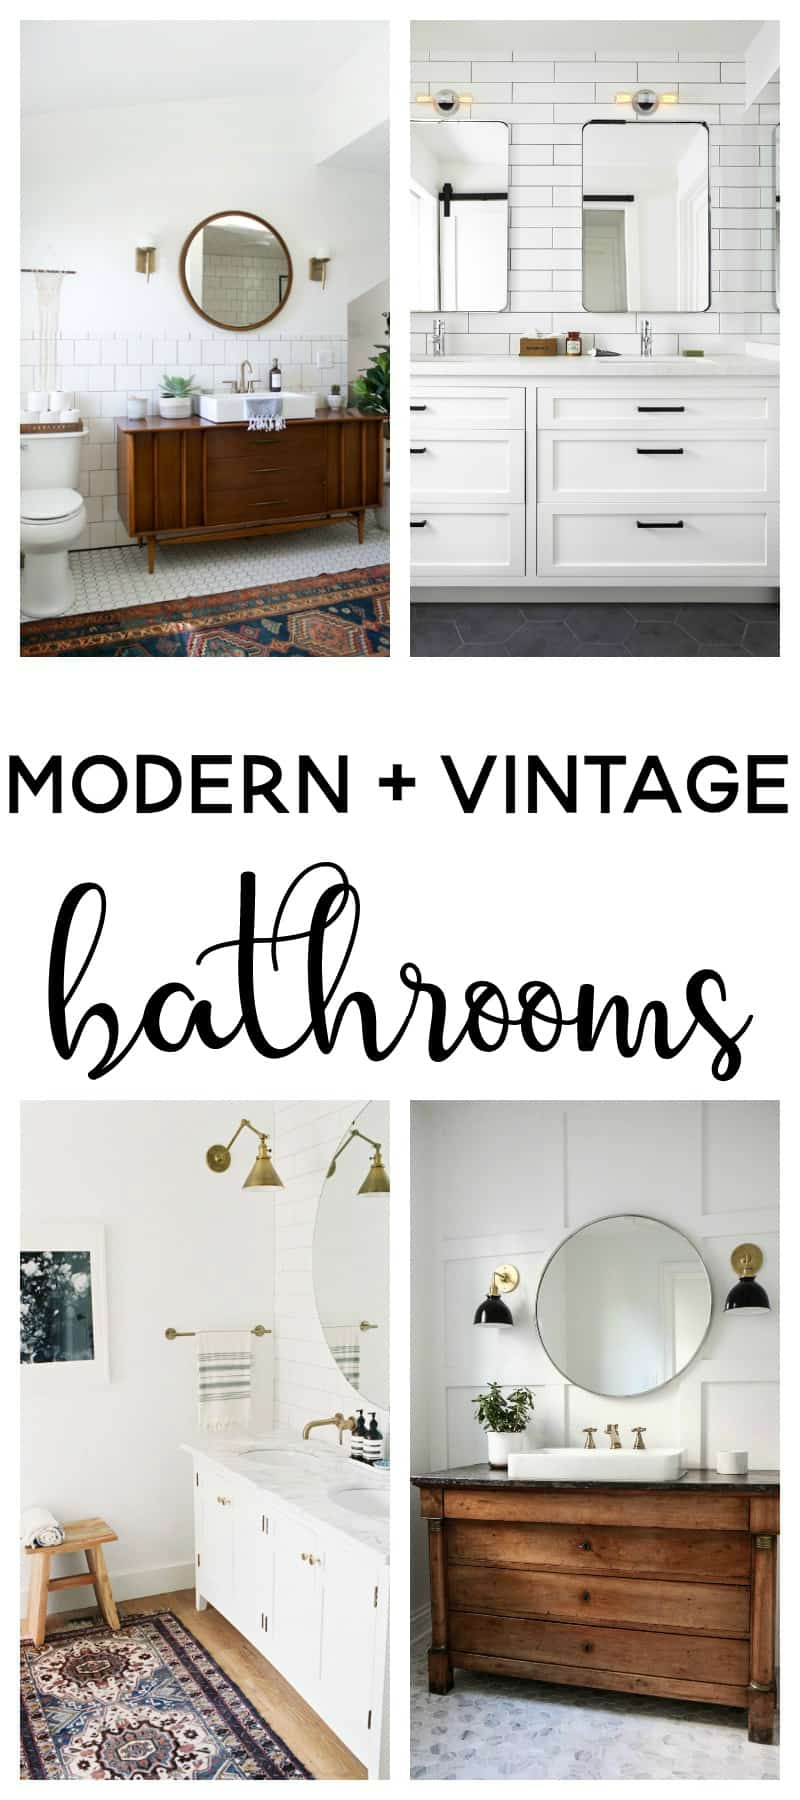 modern vintage bathroom | modern farmhouse | modern vintage bathroom ideas | bathroom ideas | bathroom remodel | bathroom decor | master bathroom ideas | master bathroom remodel | master bath remodel |